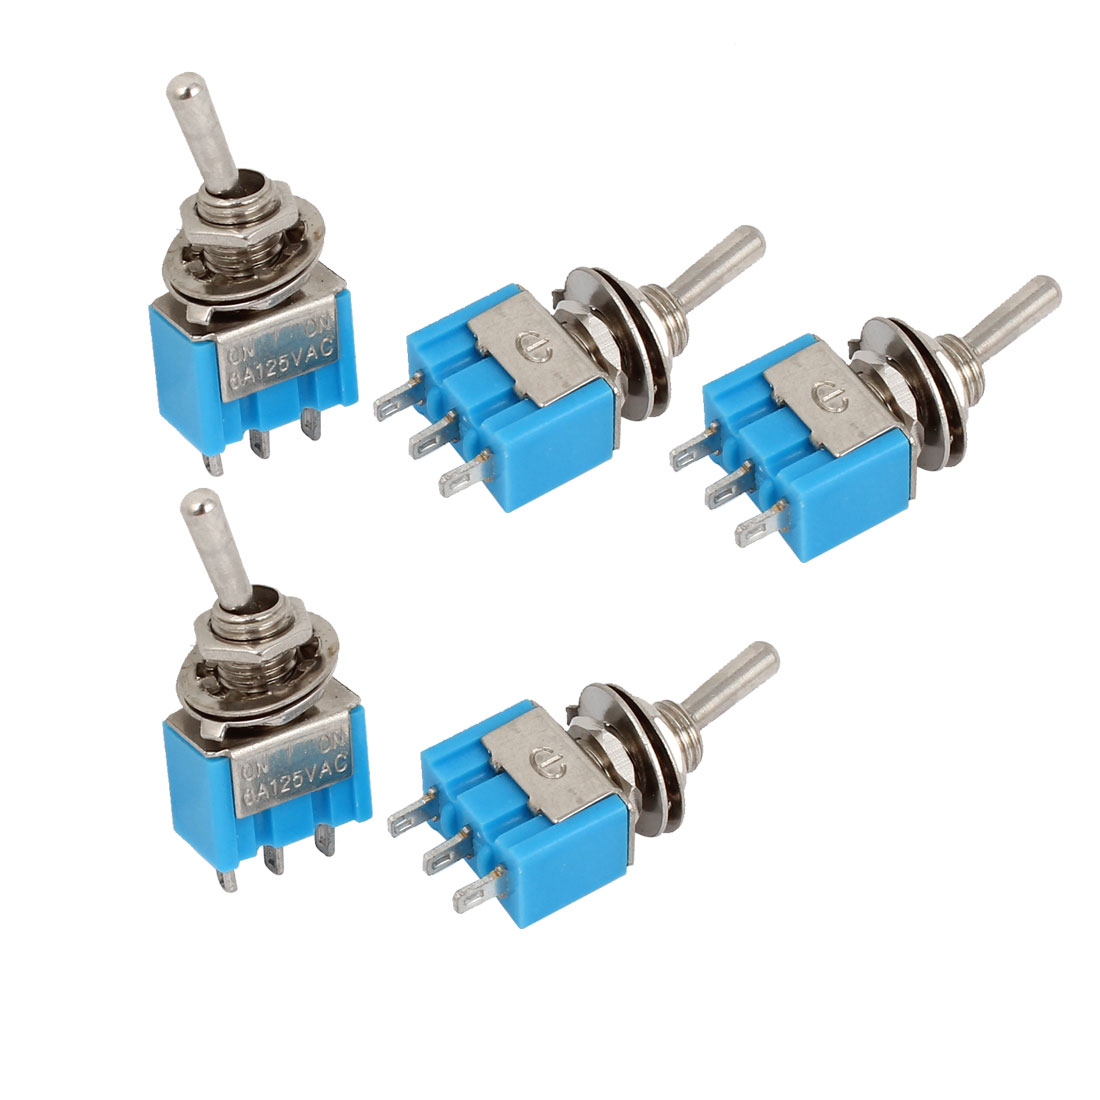 5pcs 2 Position SPDT On/On Self-locking Mini Toggle Switch AC 125V 6A